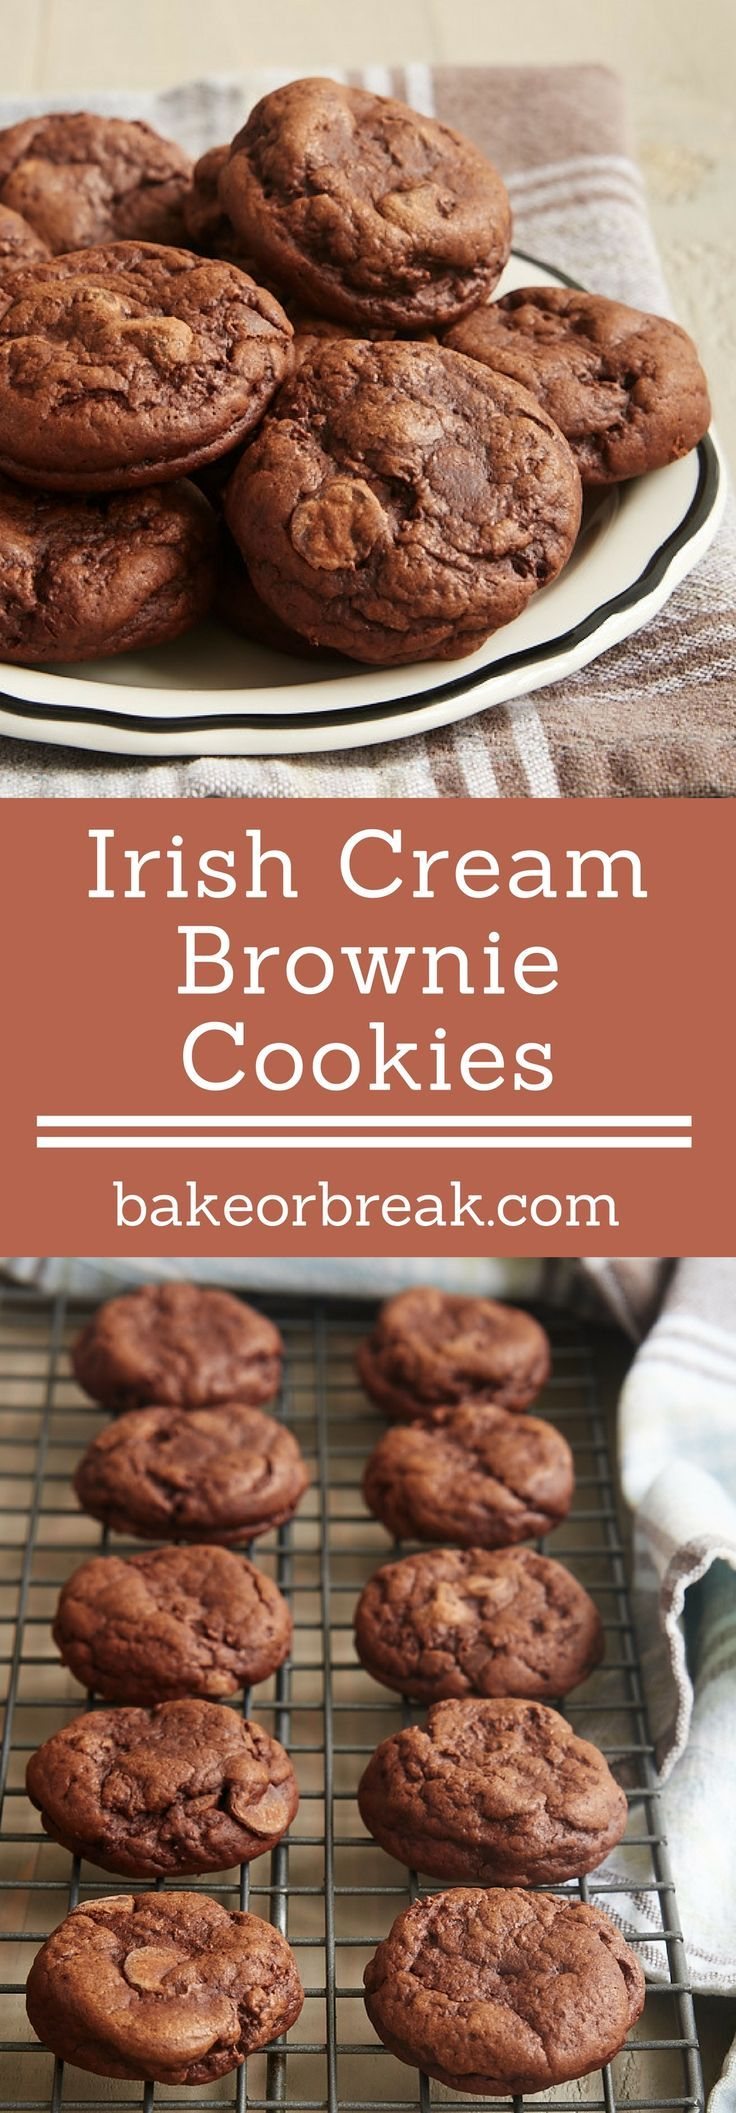 There is SO much rich, fudgy flavor in these little Irish Cream Brownie Cookies! If you love chocolate, then these are sure to please. - Bake or Break